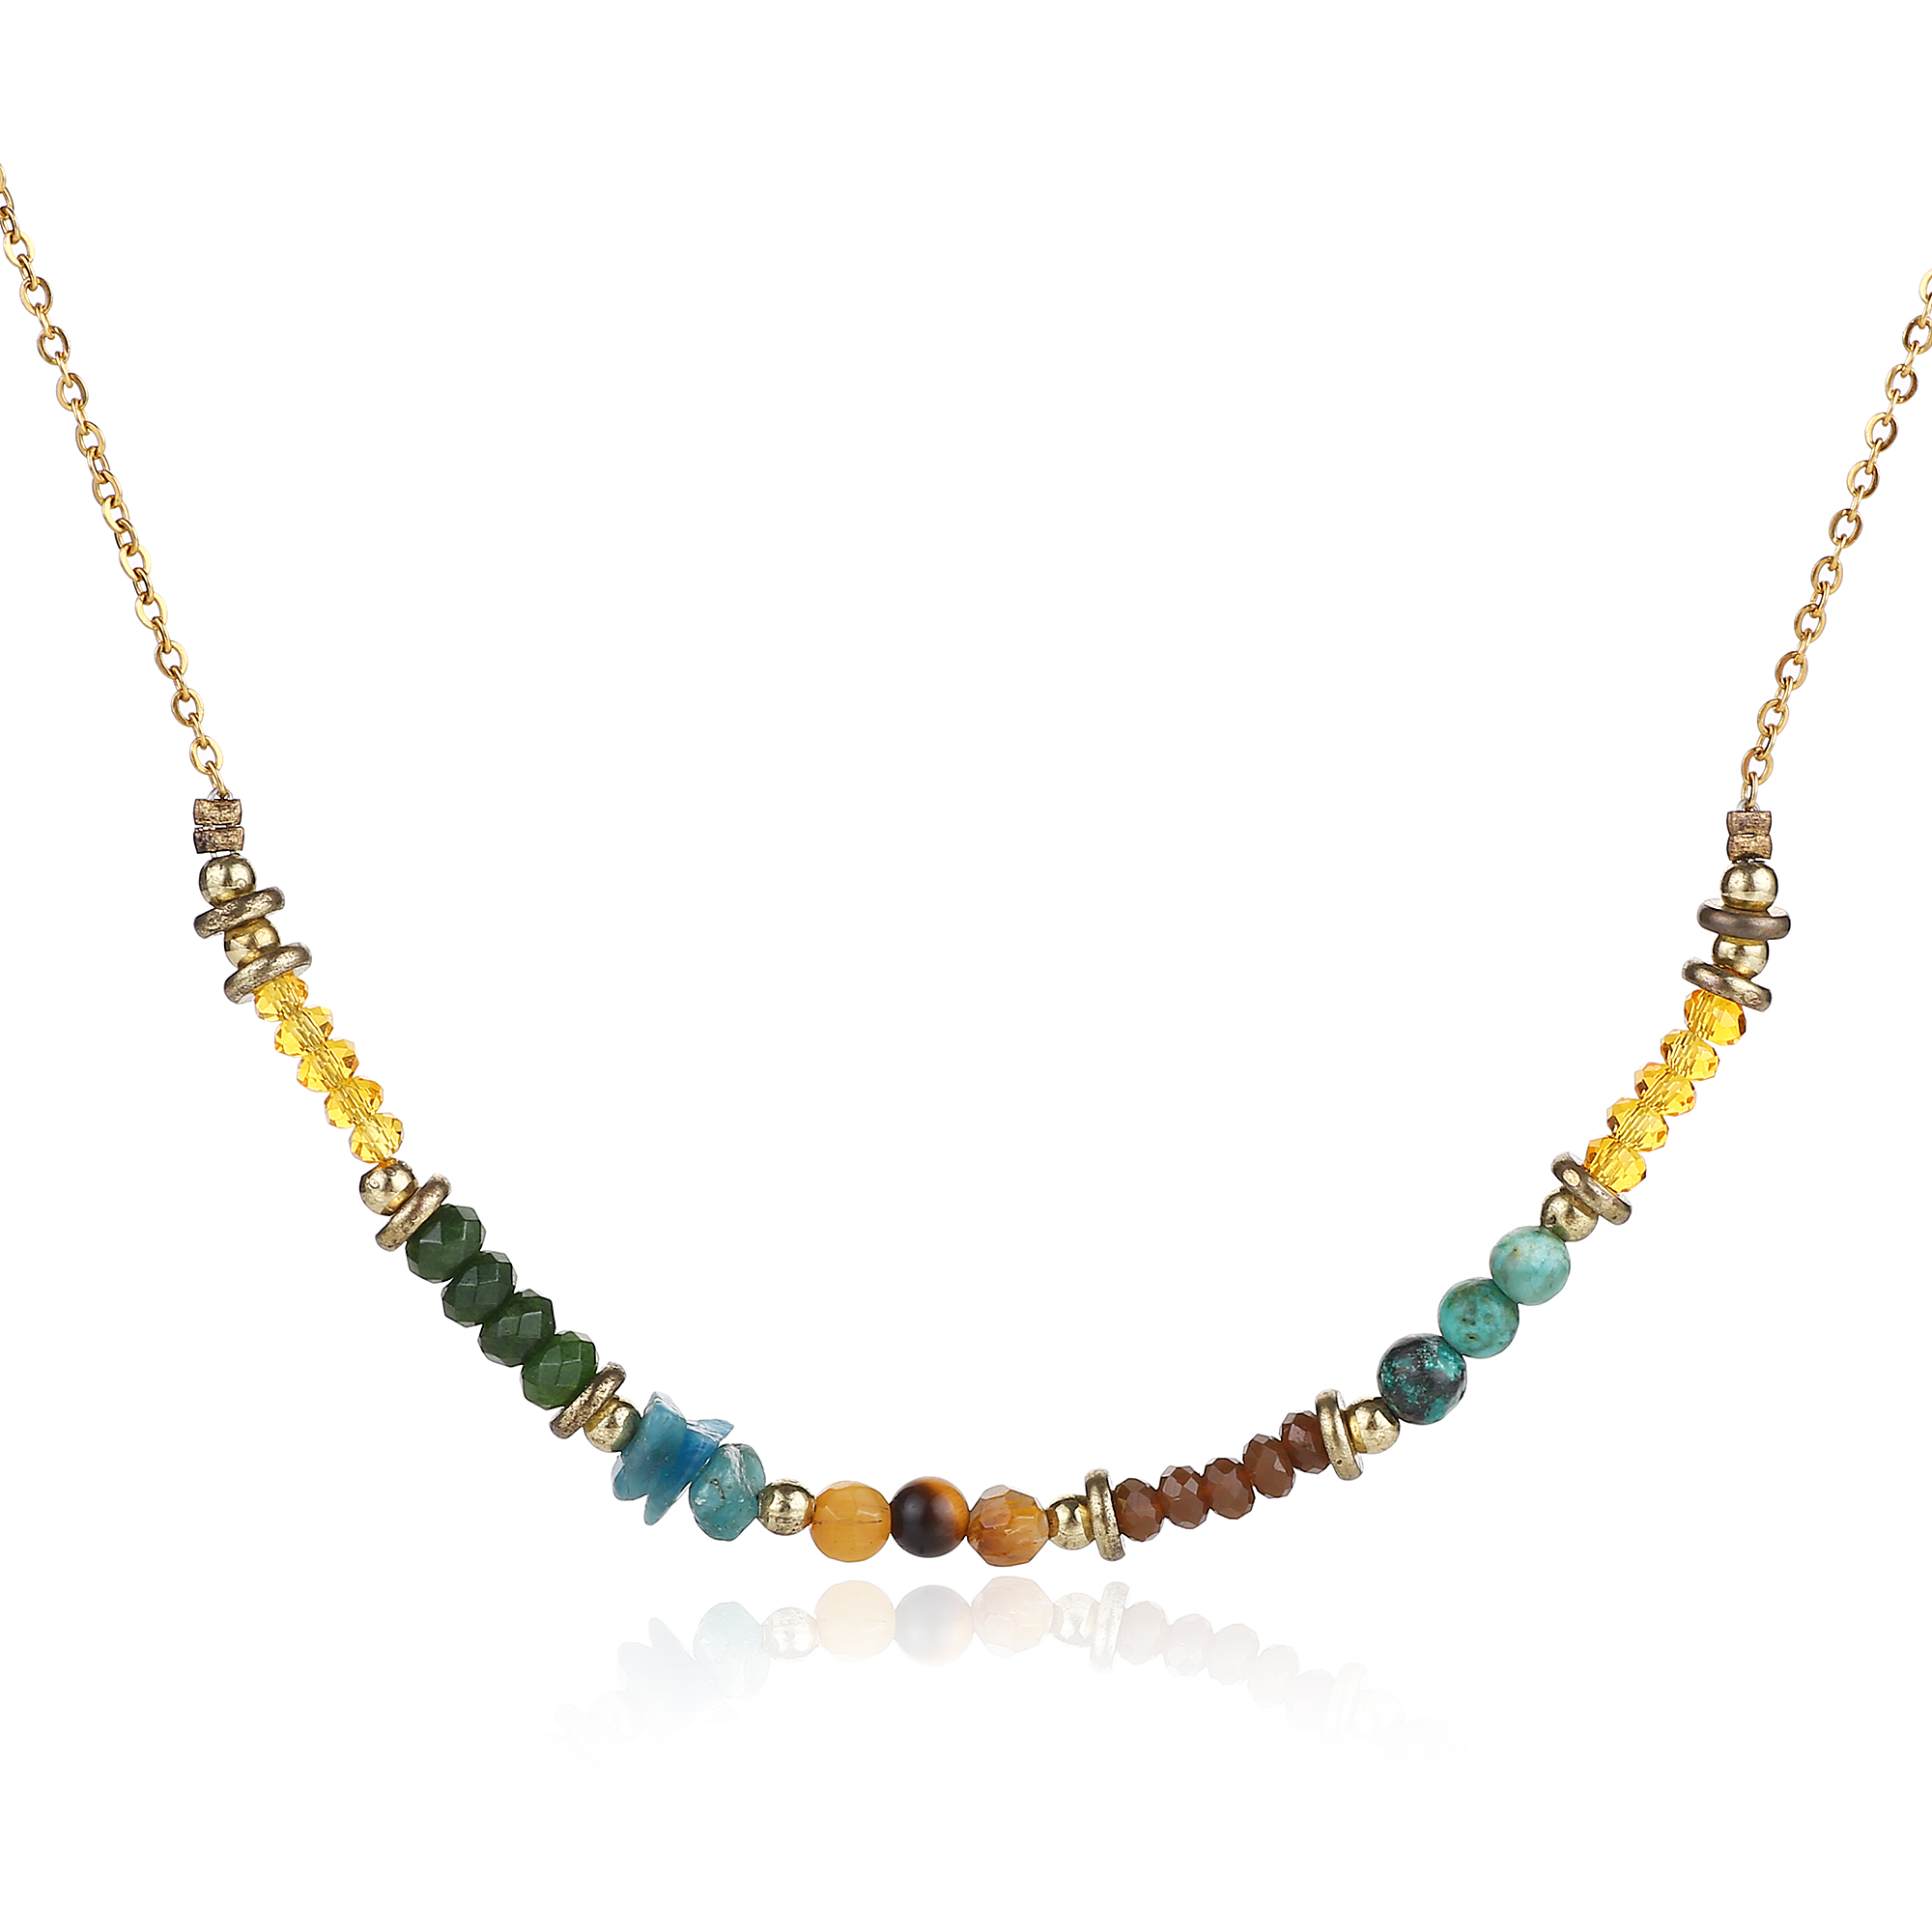 Multicolor Natural Crystal Oval Cluster Pendant Necklace Irregular Ore Resin Choker Sweater Chain for Women Ladies Girls E